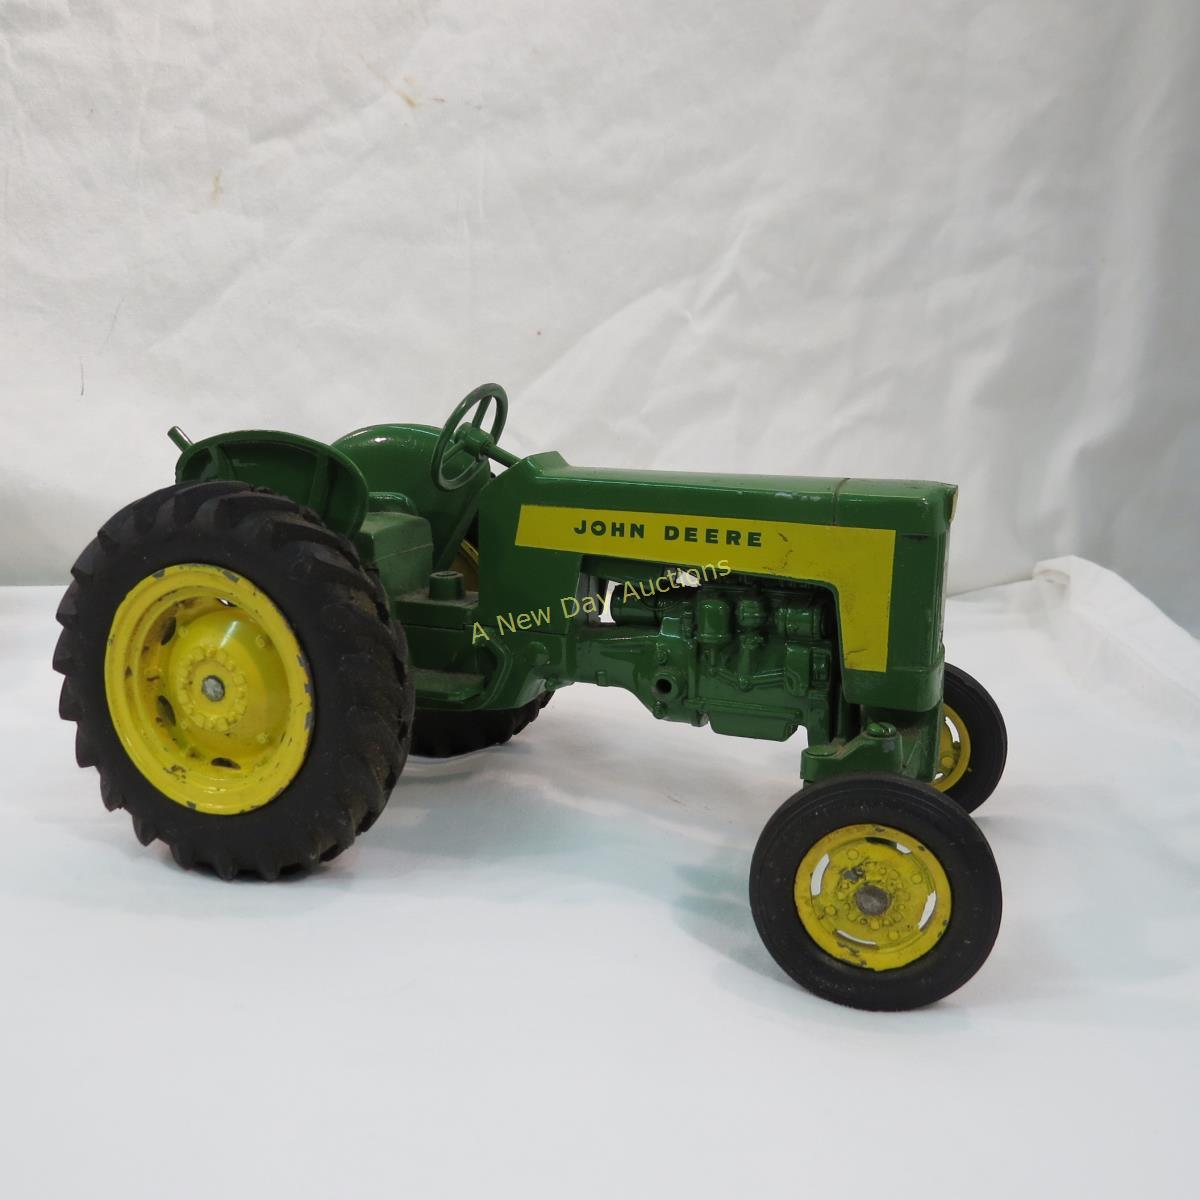 John Deere Toy Tractor with 4 Implements